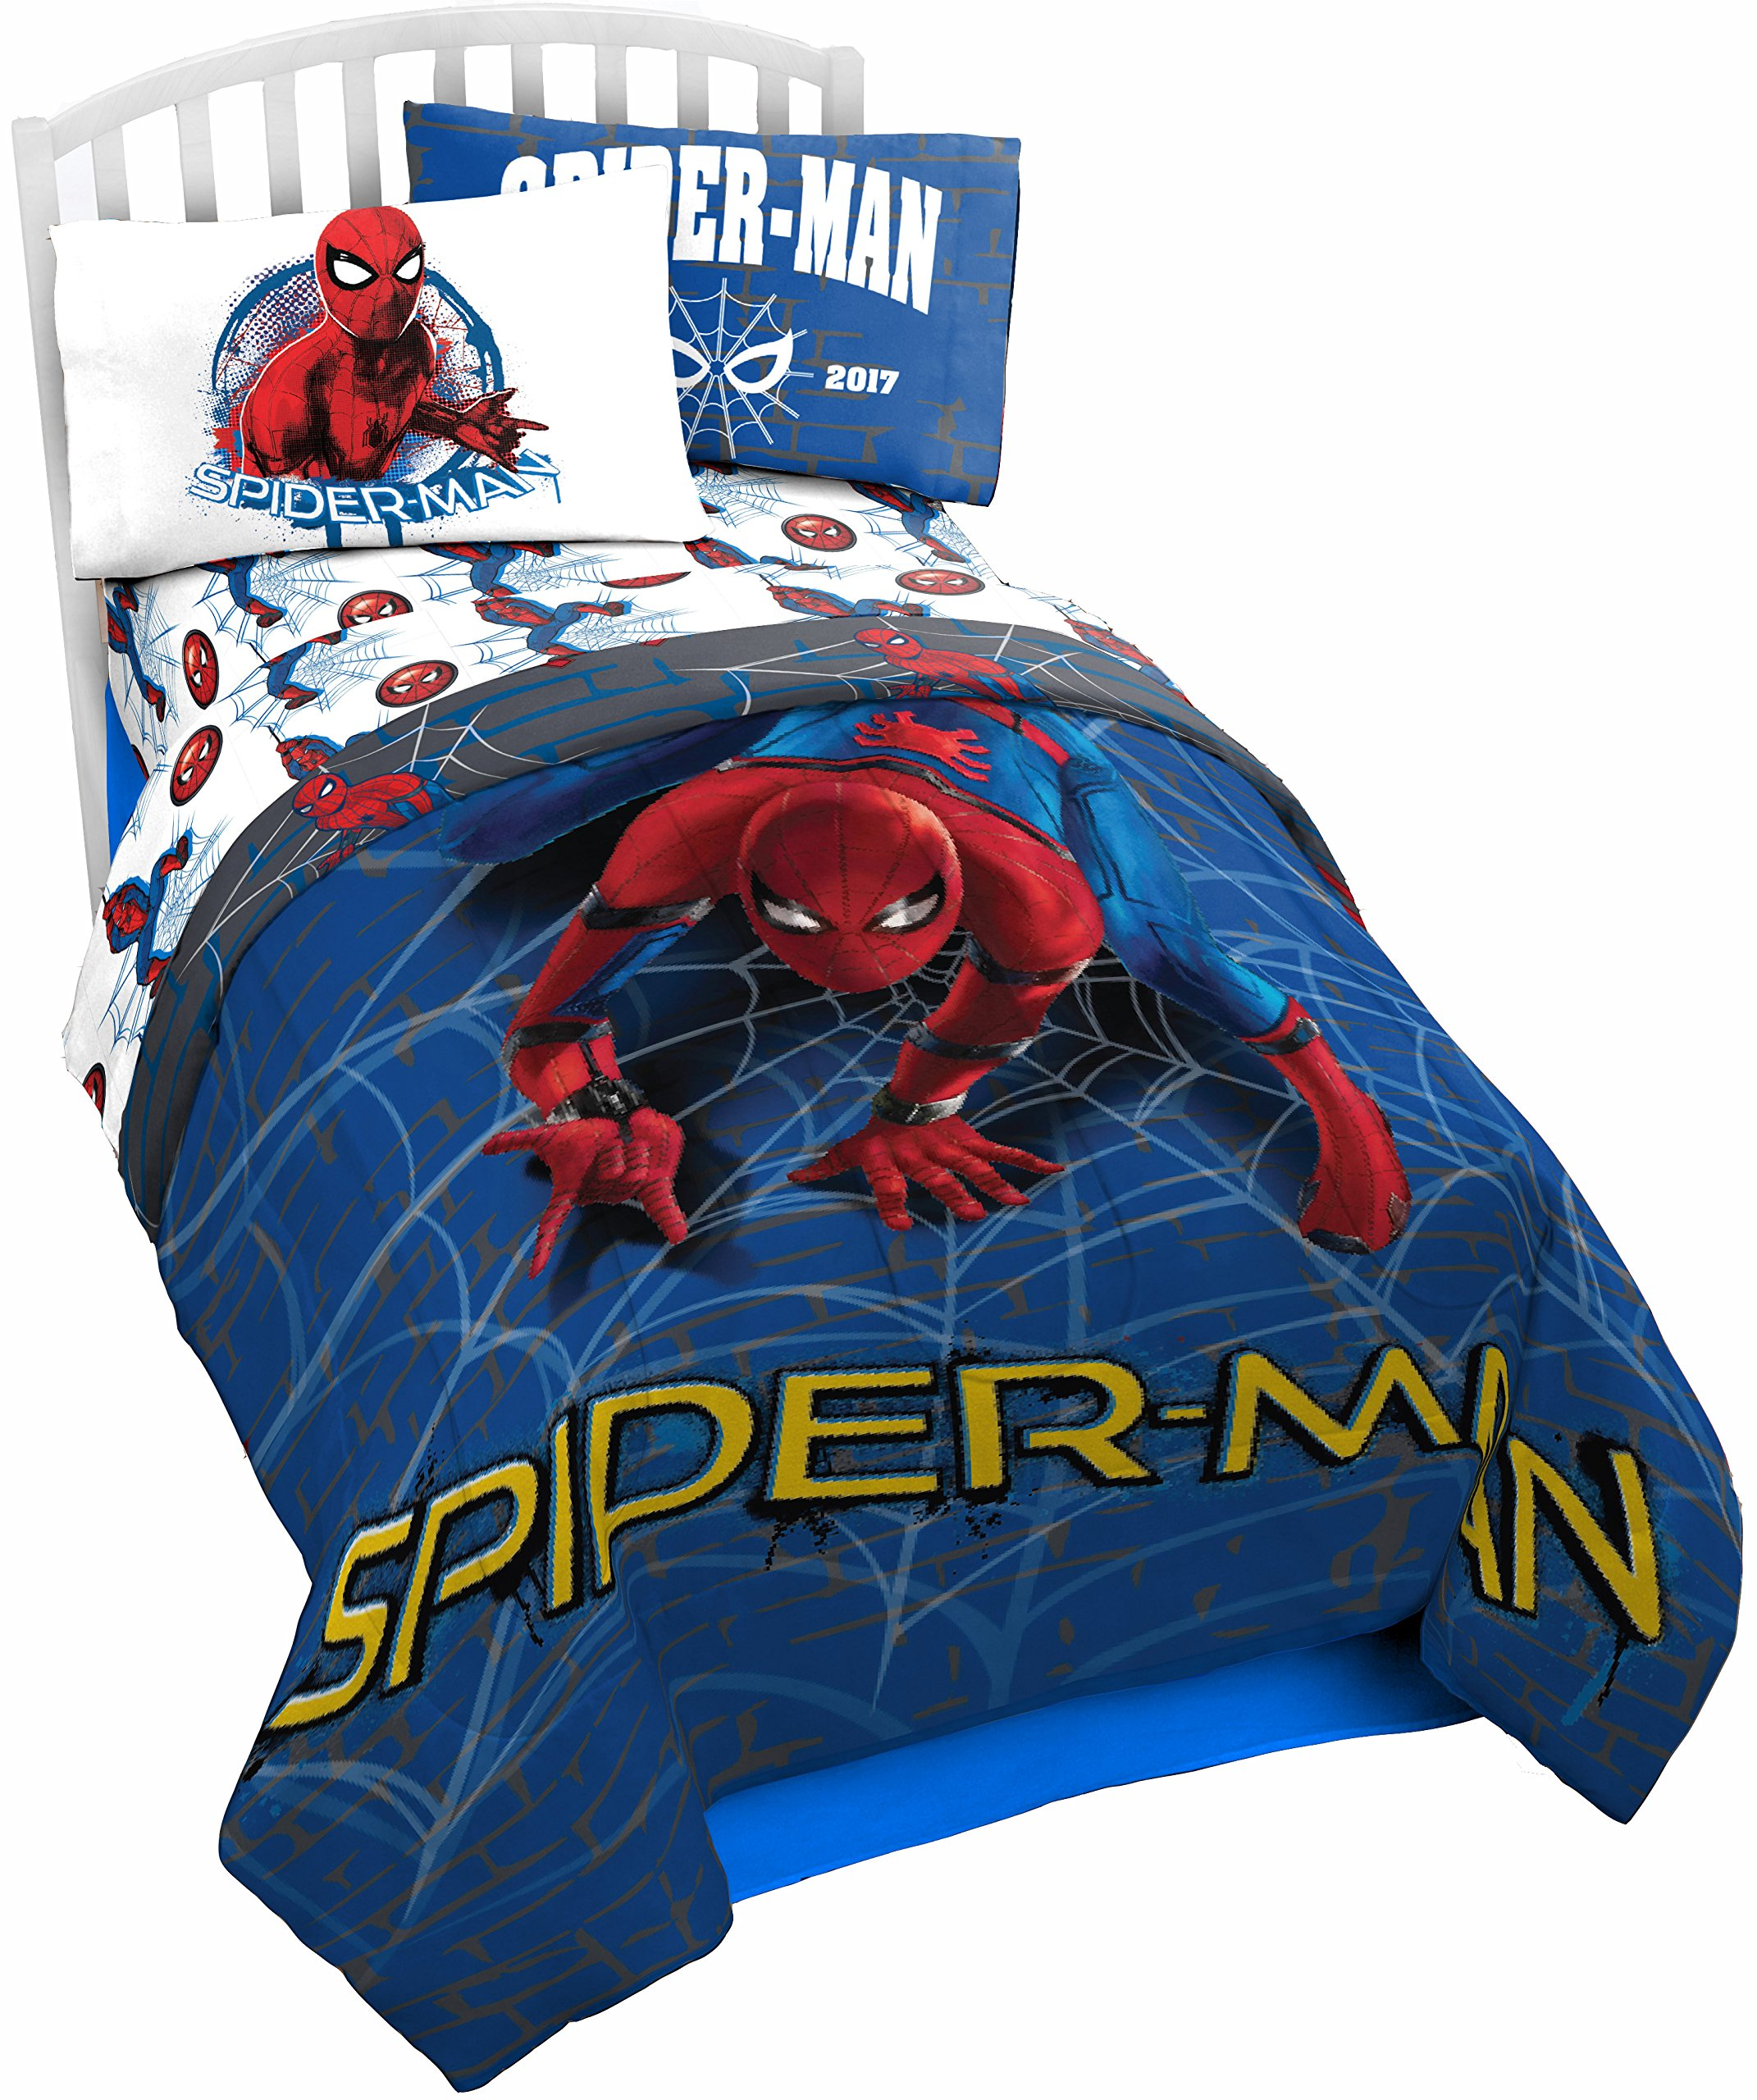 Marvel Spider Man Wall Crawler Twin Comforter - Super Soft Kids Reversible Bedding features Spiderman - Fade Resistant Polyester Microfiber Fill (Official Product)